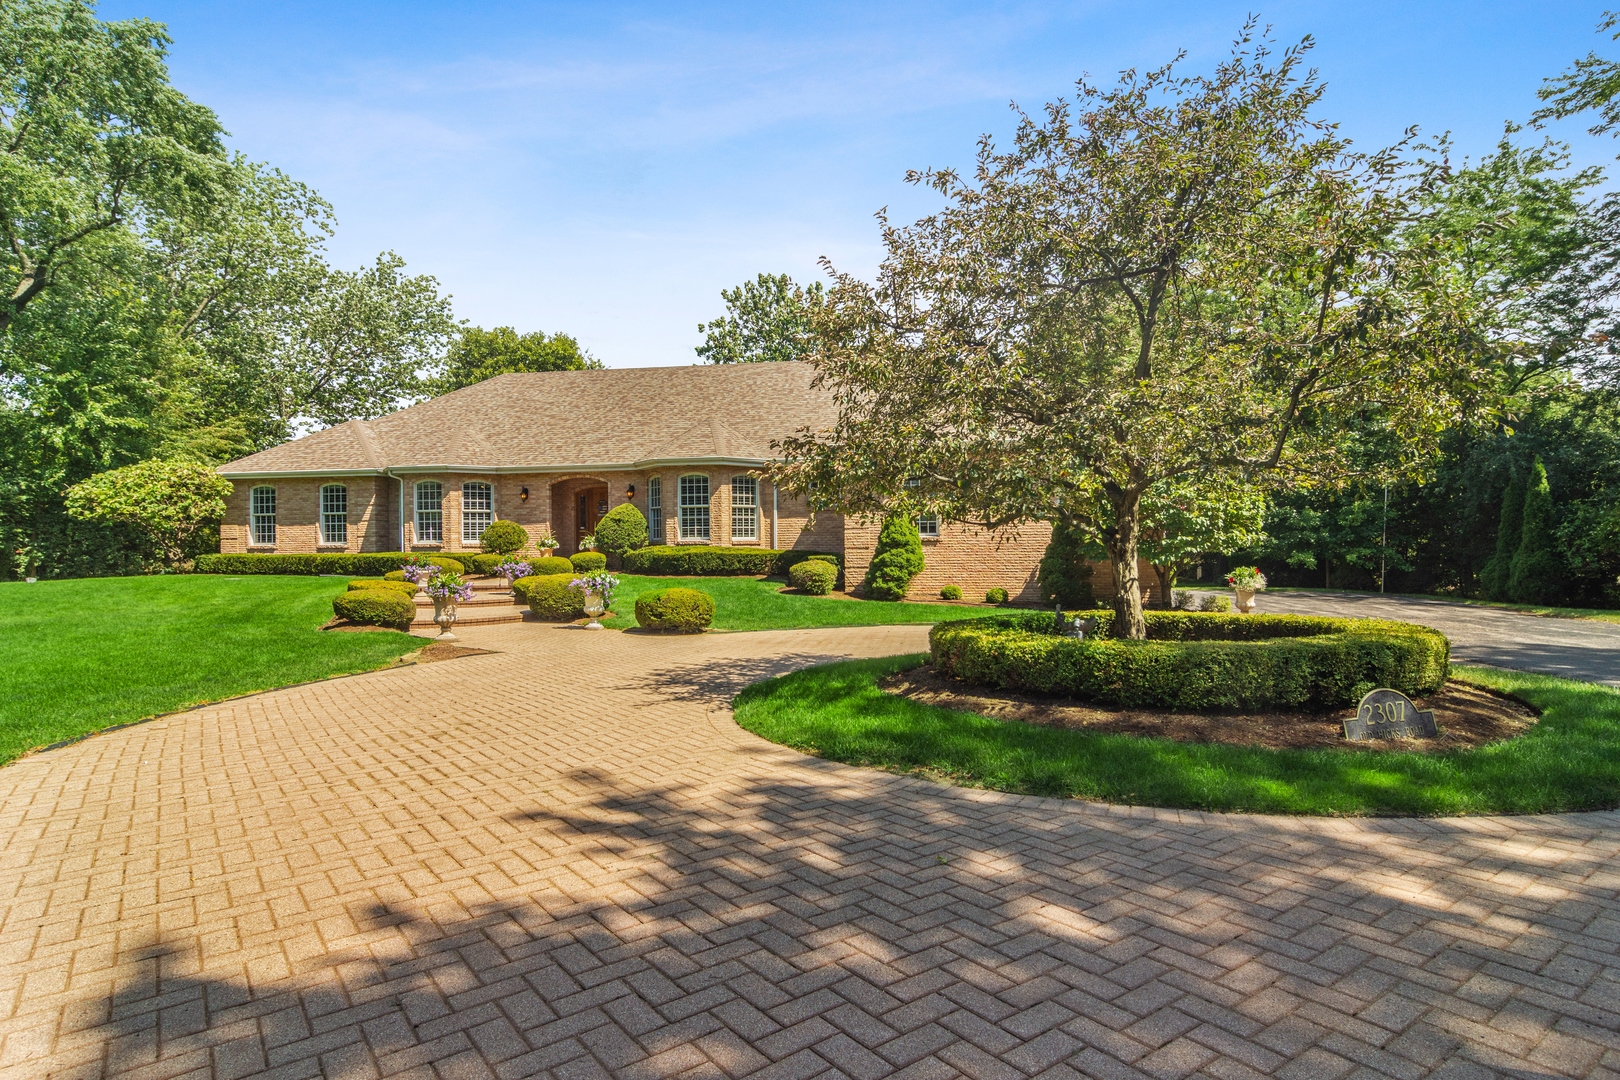 2307 Old Hicks Road, Long Grove, Il 60047